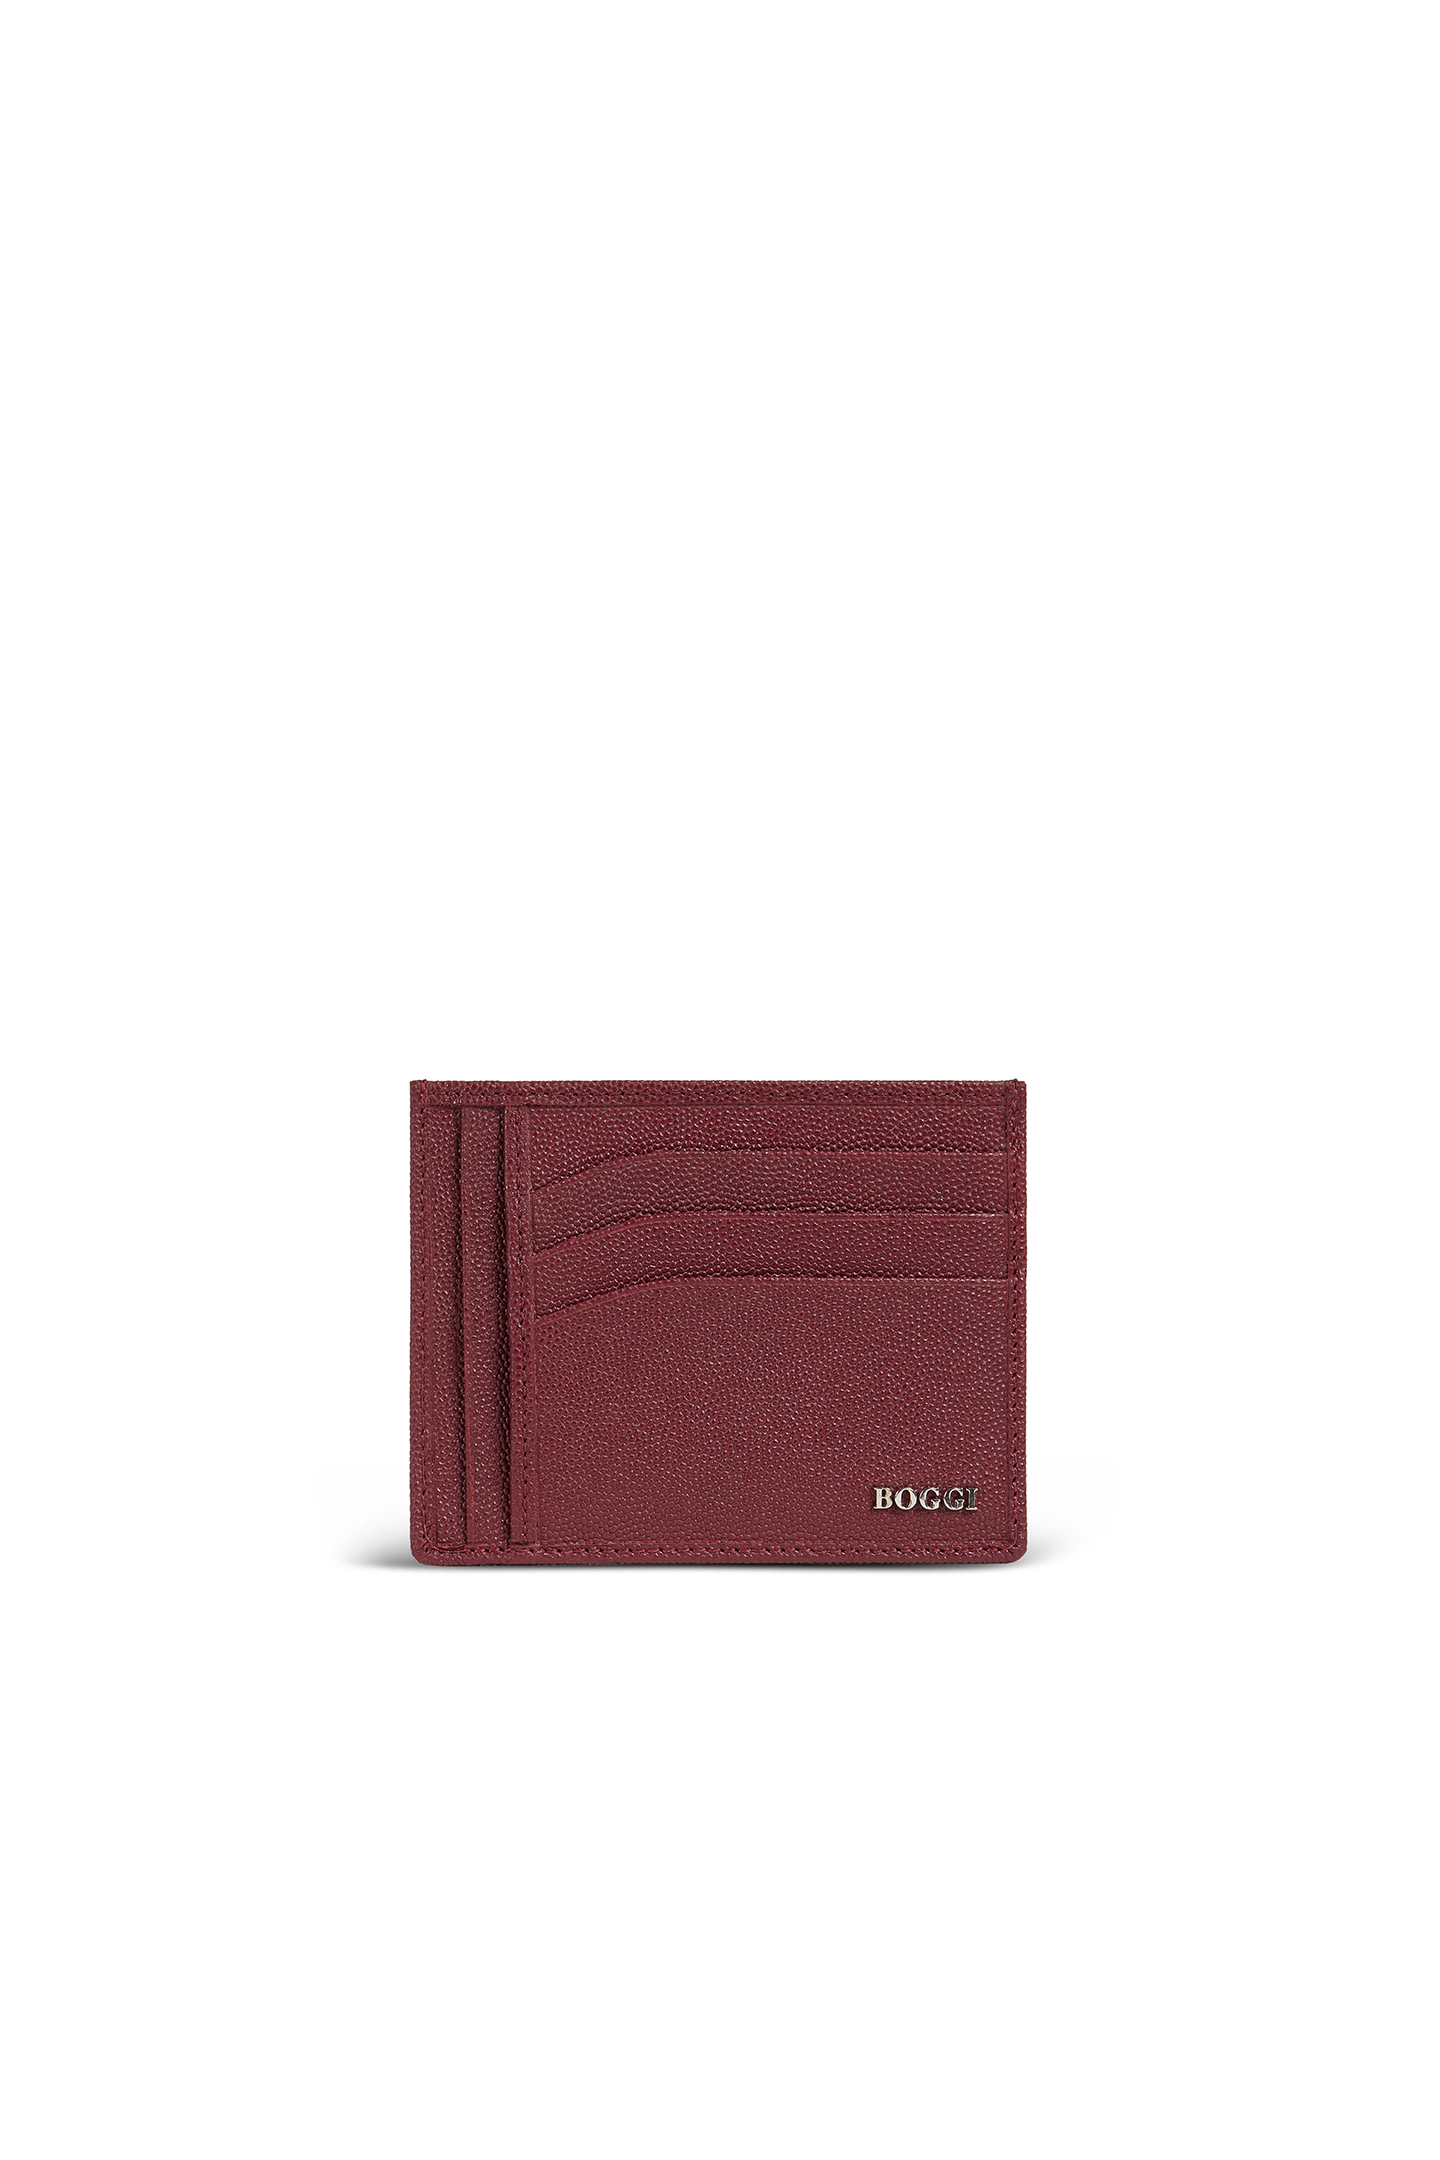 12b96bf4db02f1 LARGE CAVIAR LEATHER CARD HOLDER, Red, large